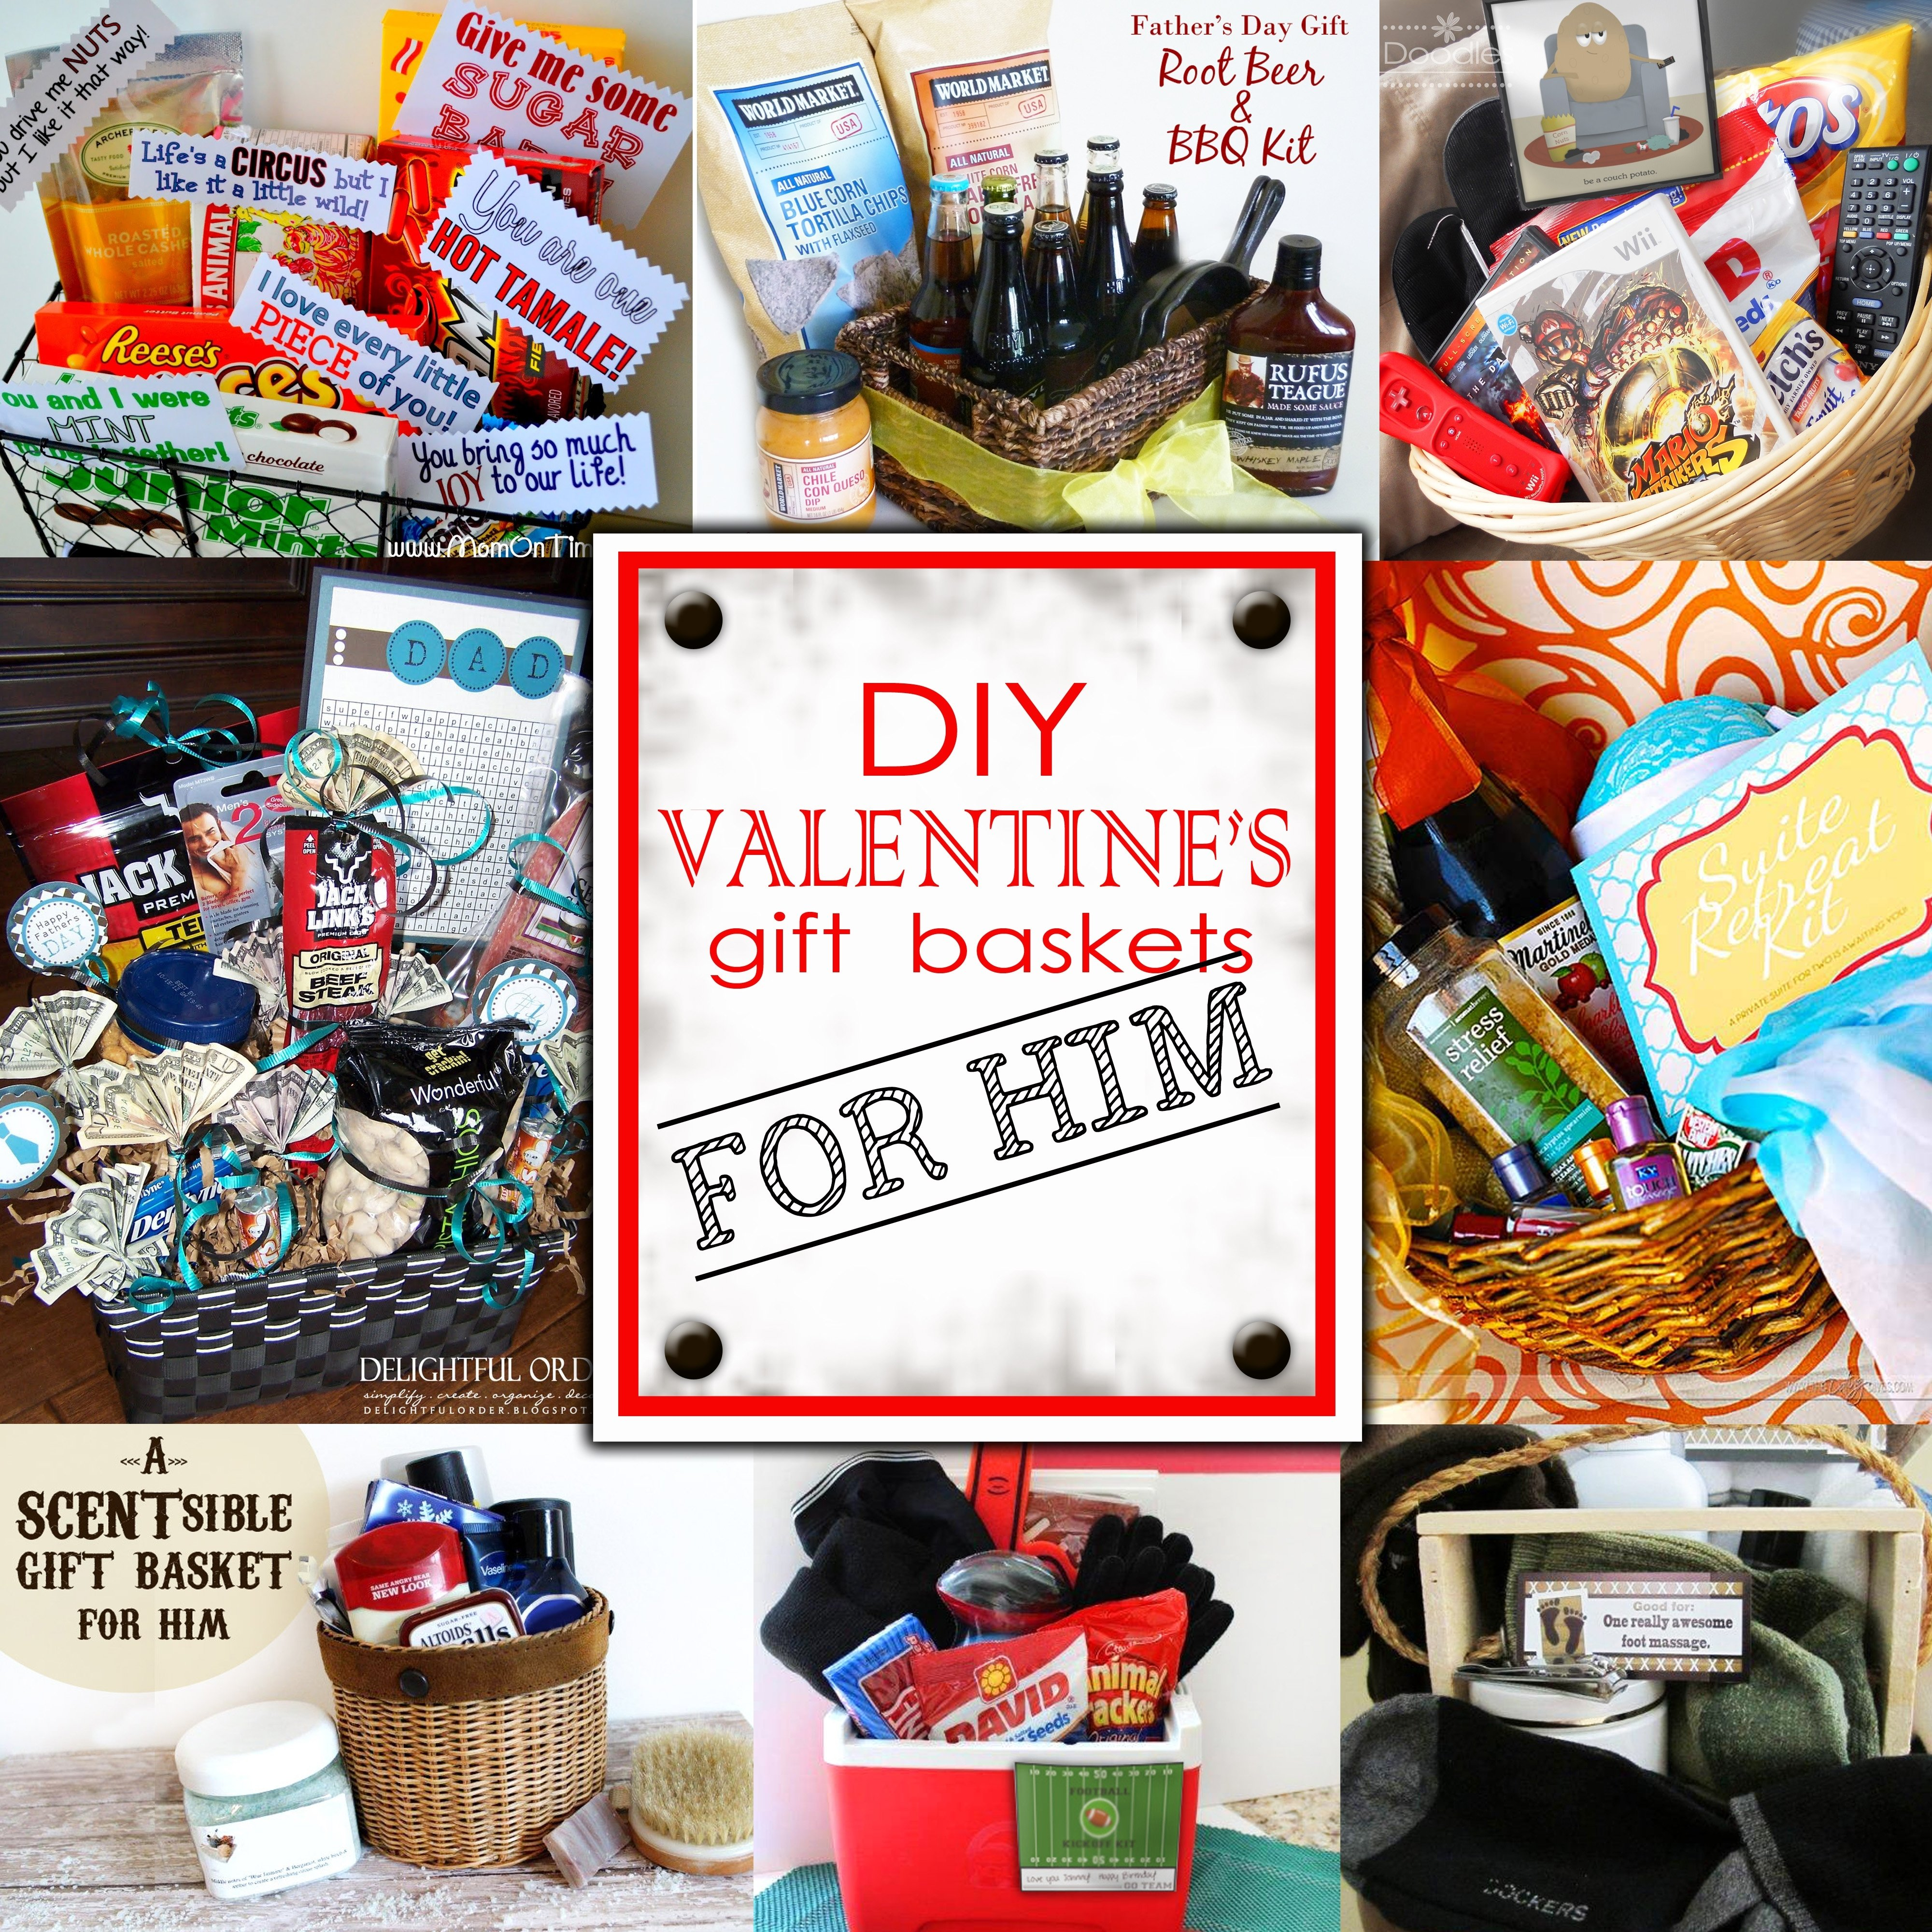 10 Lovable What To Get A Guy For Valentines Day Ideas gift ideas for boyfriend valentines gift ideas for him diy 2021